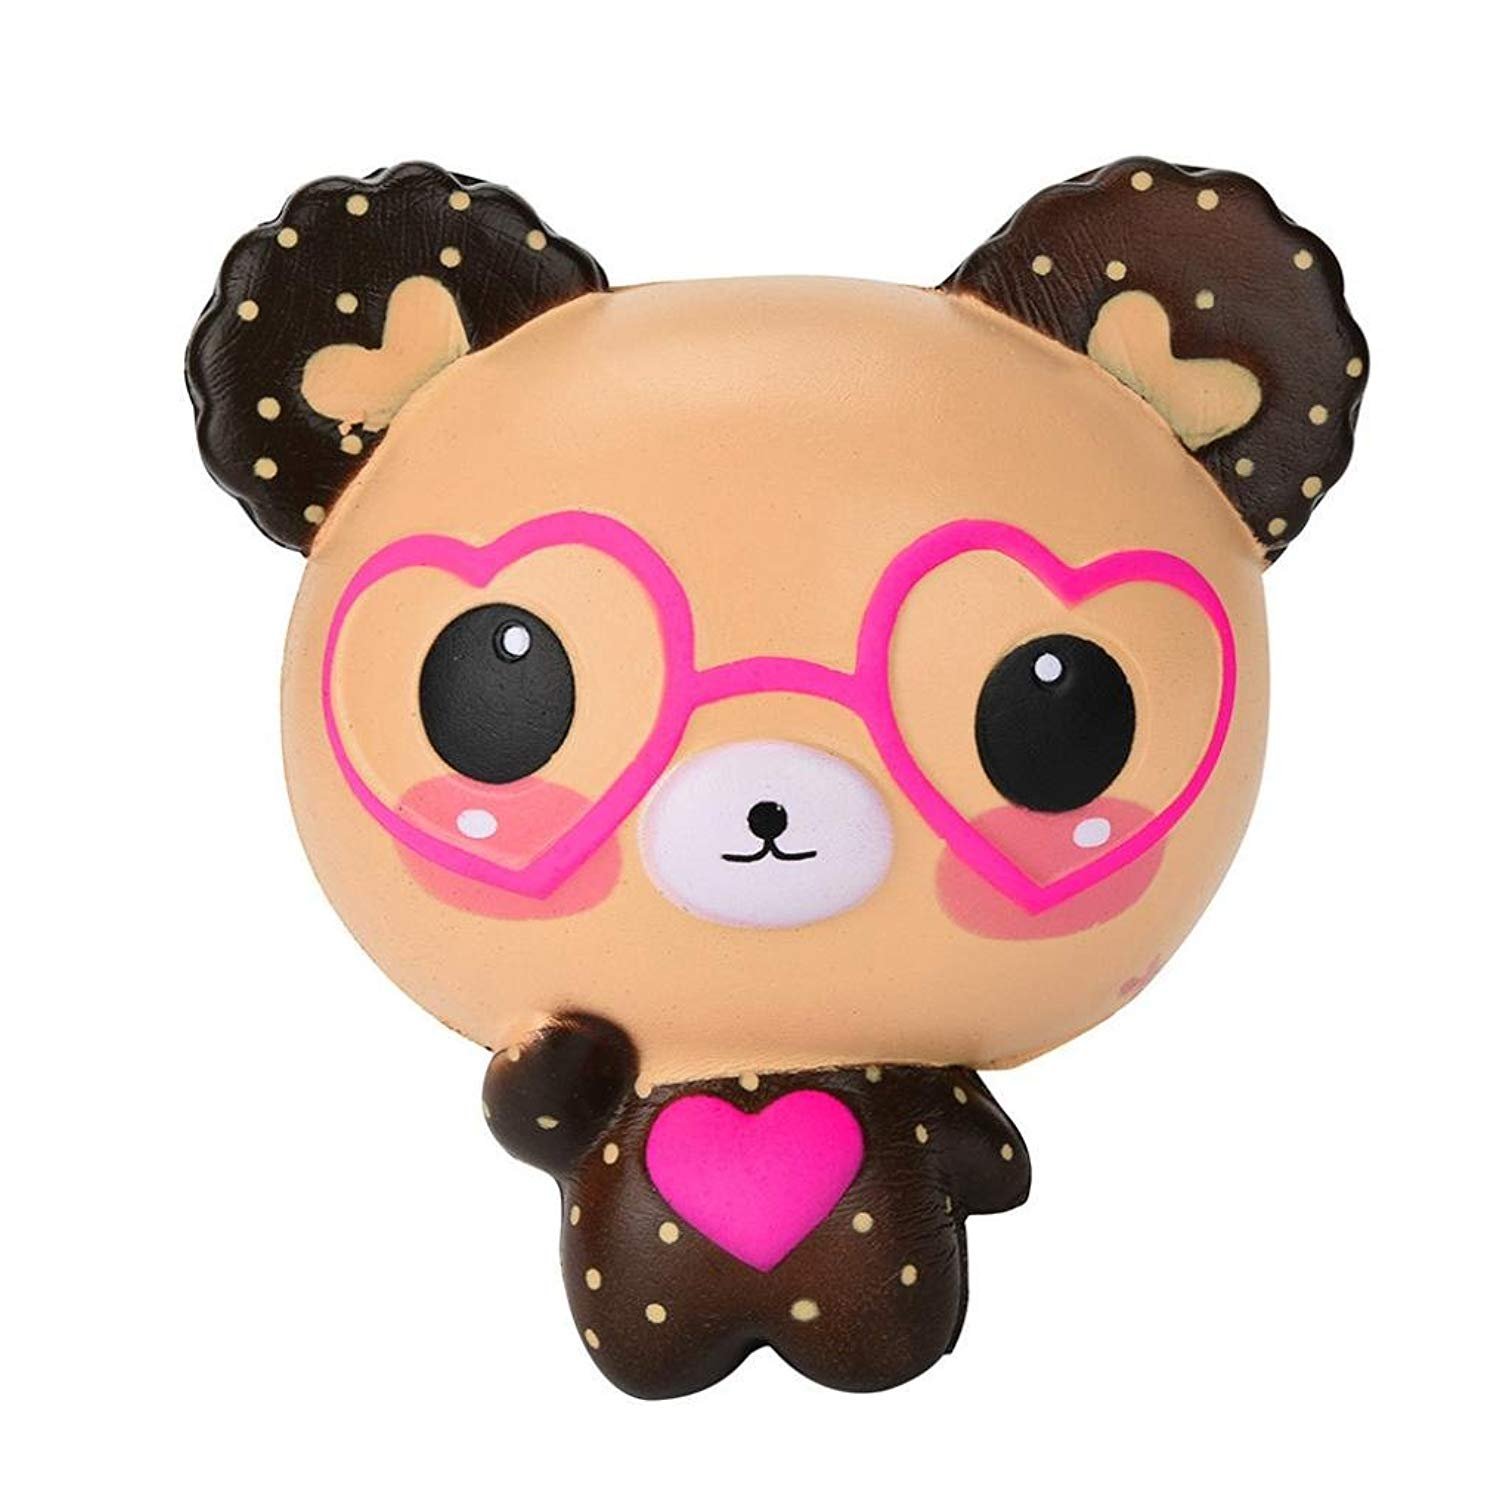 Malbaba 1PC Squishy Love Cute Glasses Bear Scented Squishy Charm Super Slow Rising Squeeze Toys Stress Reliever Toy/Charm Decoration/Gift